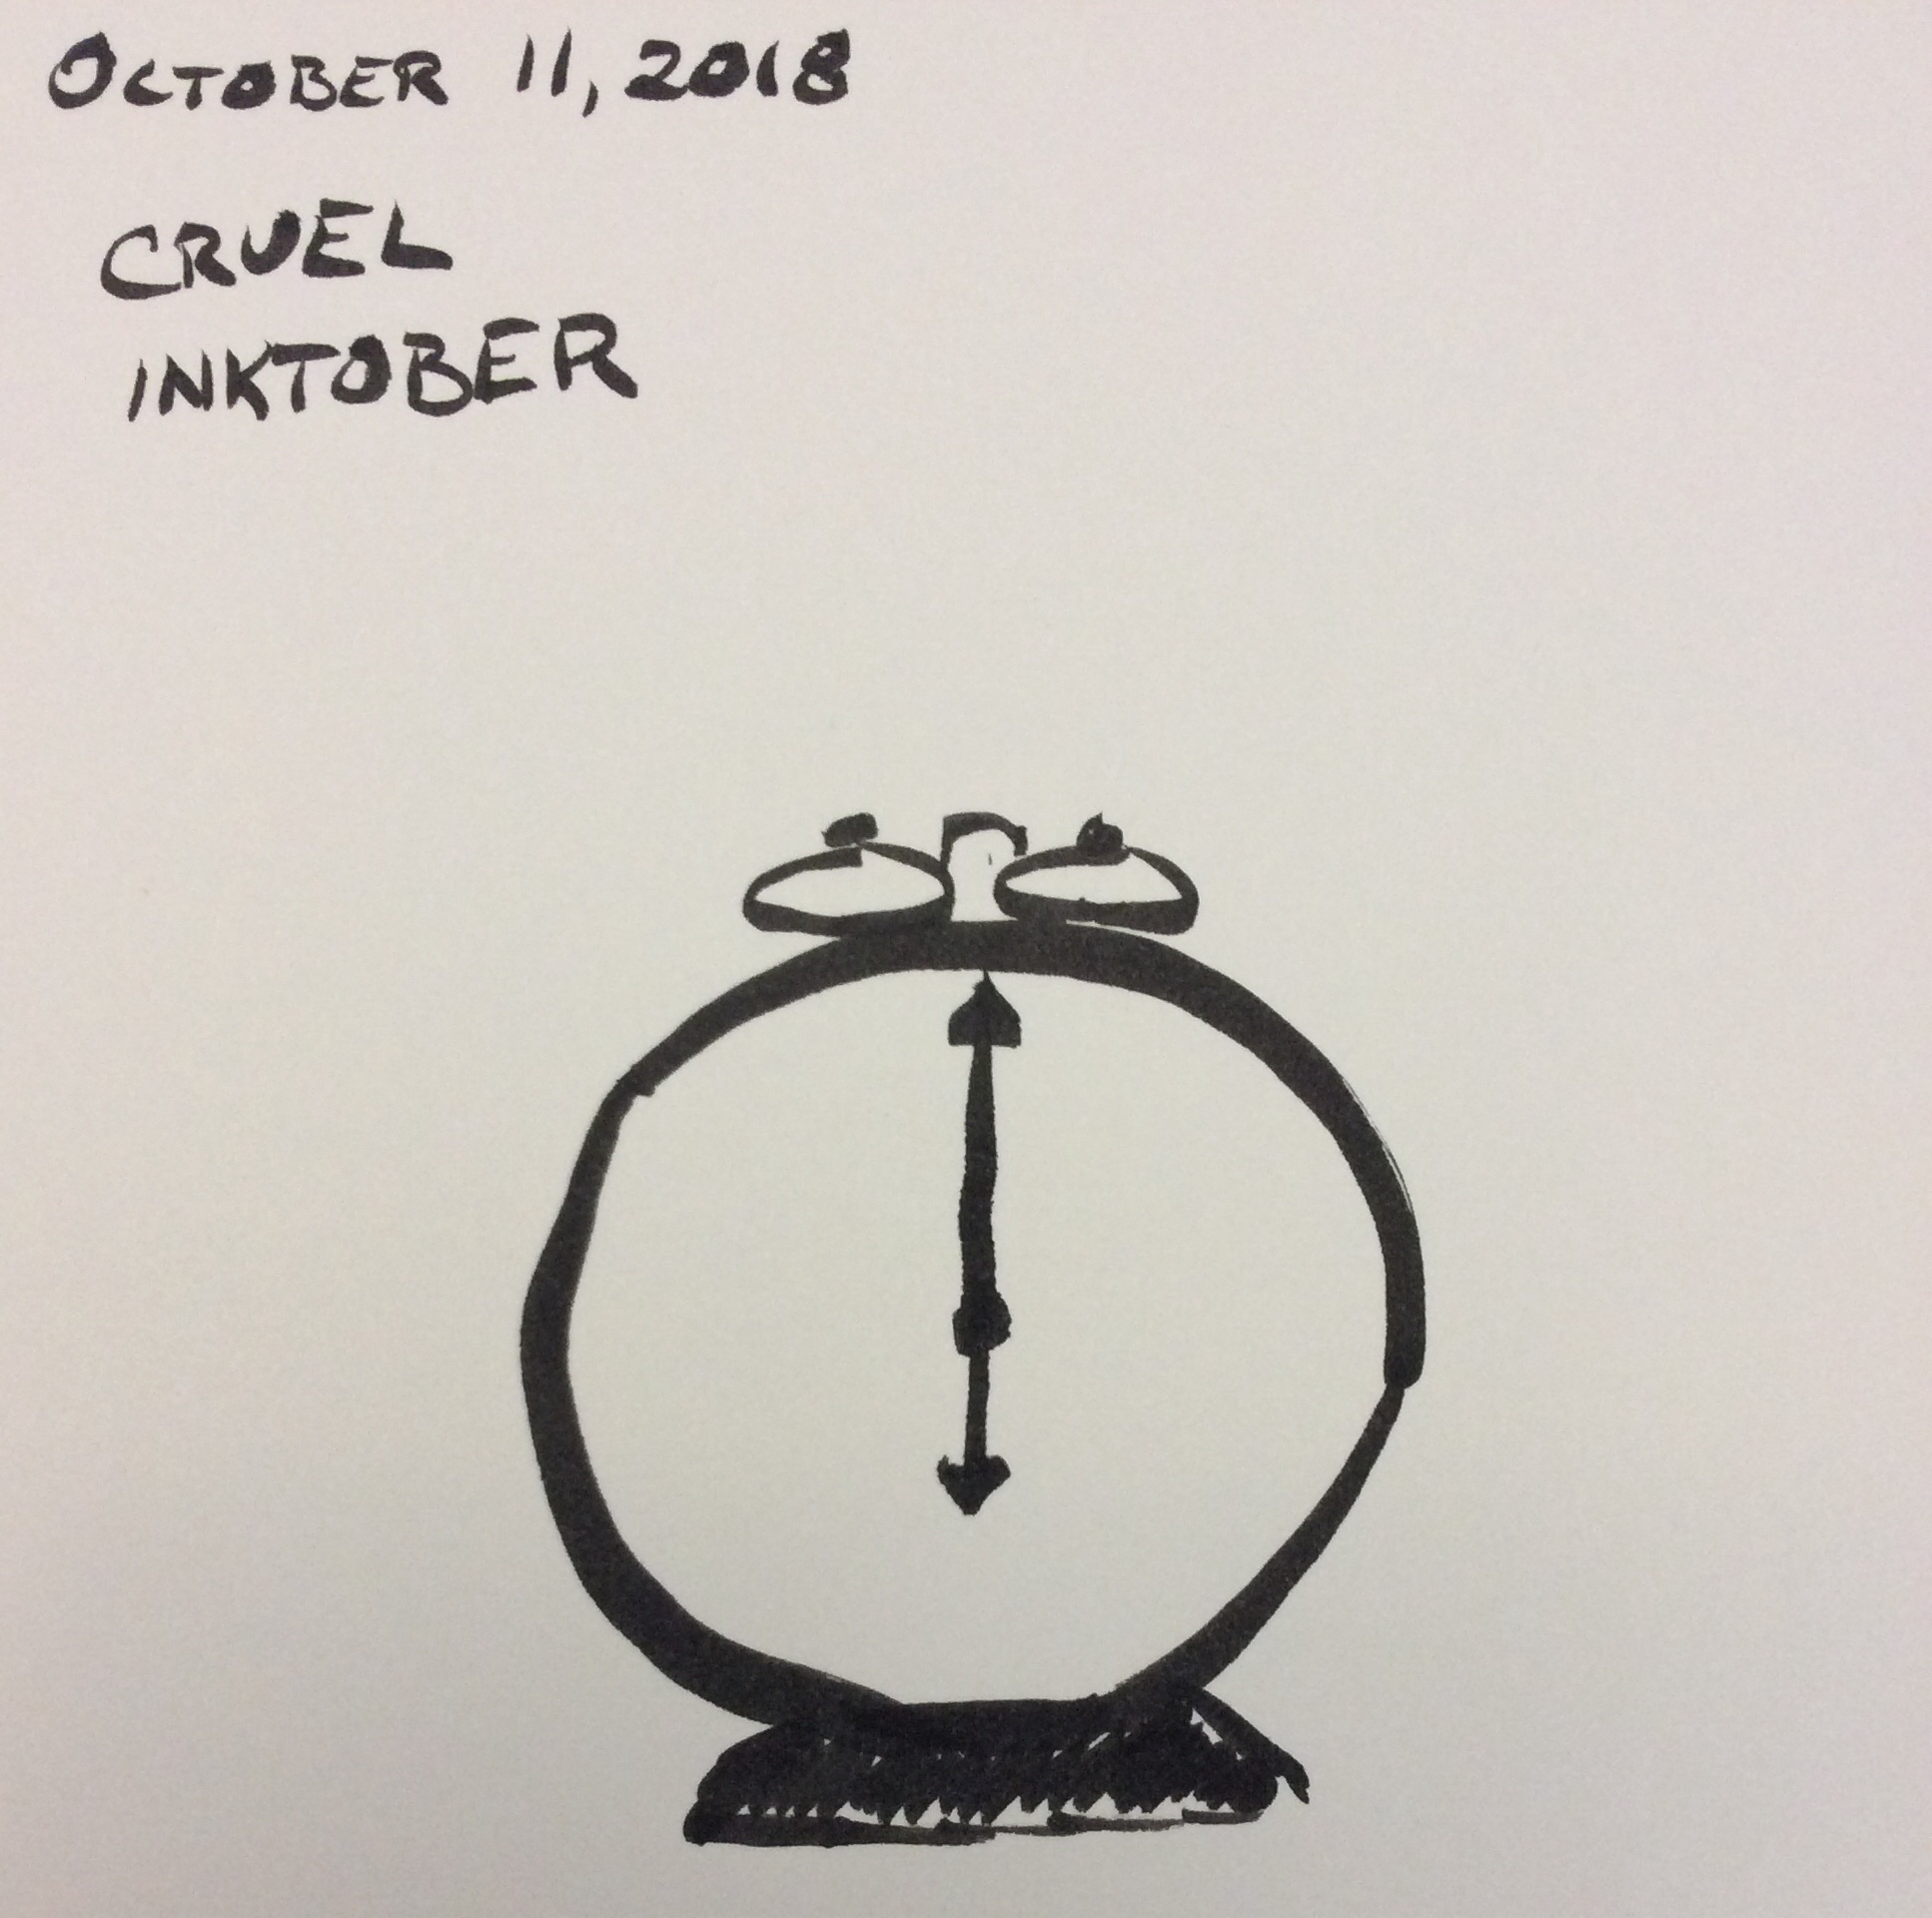 Drawing of a clock set to six o'clock, keywords cruel and Inktober